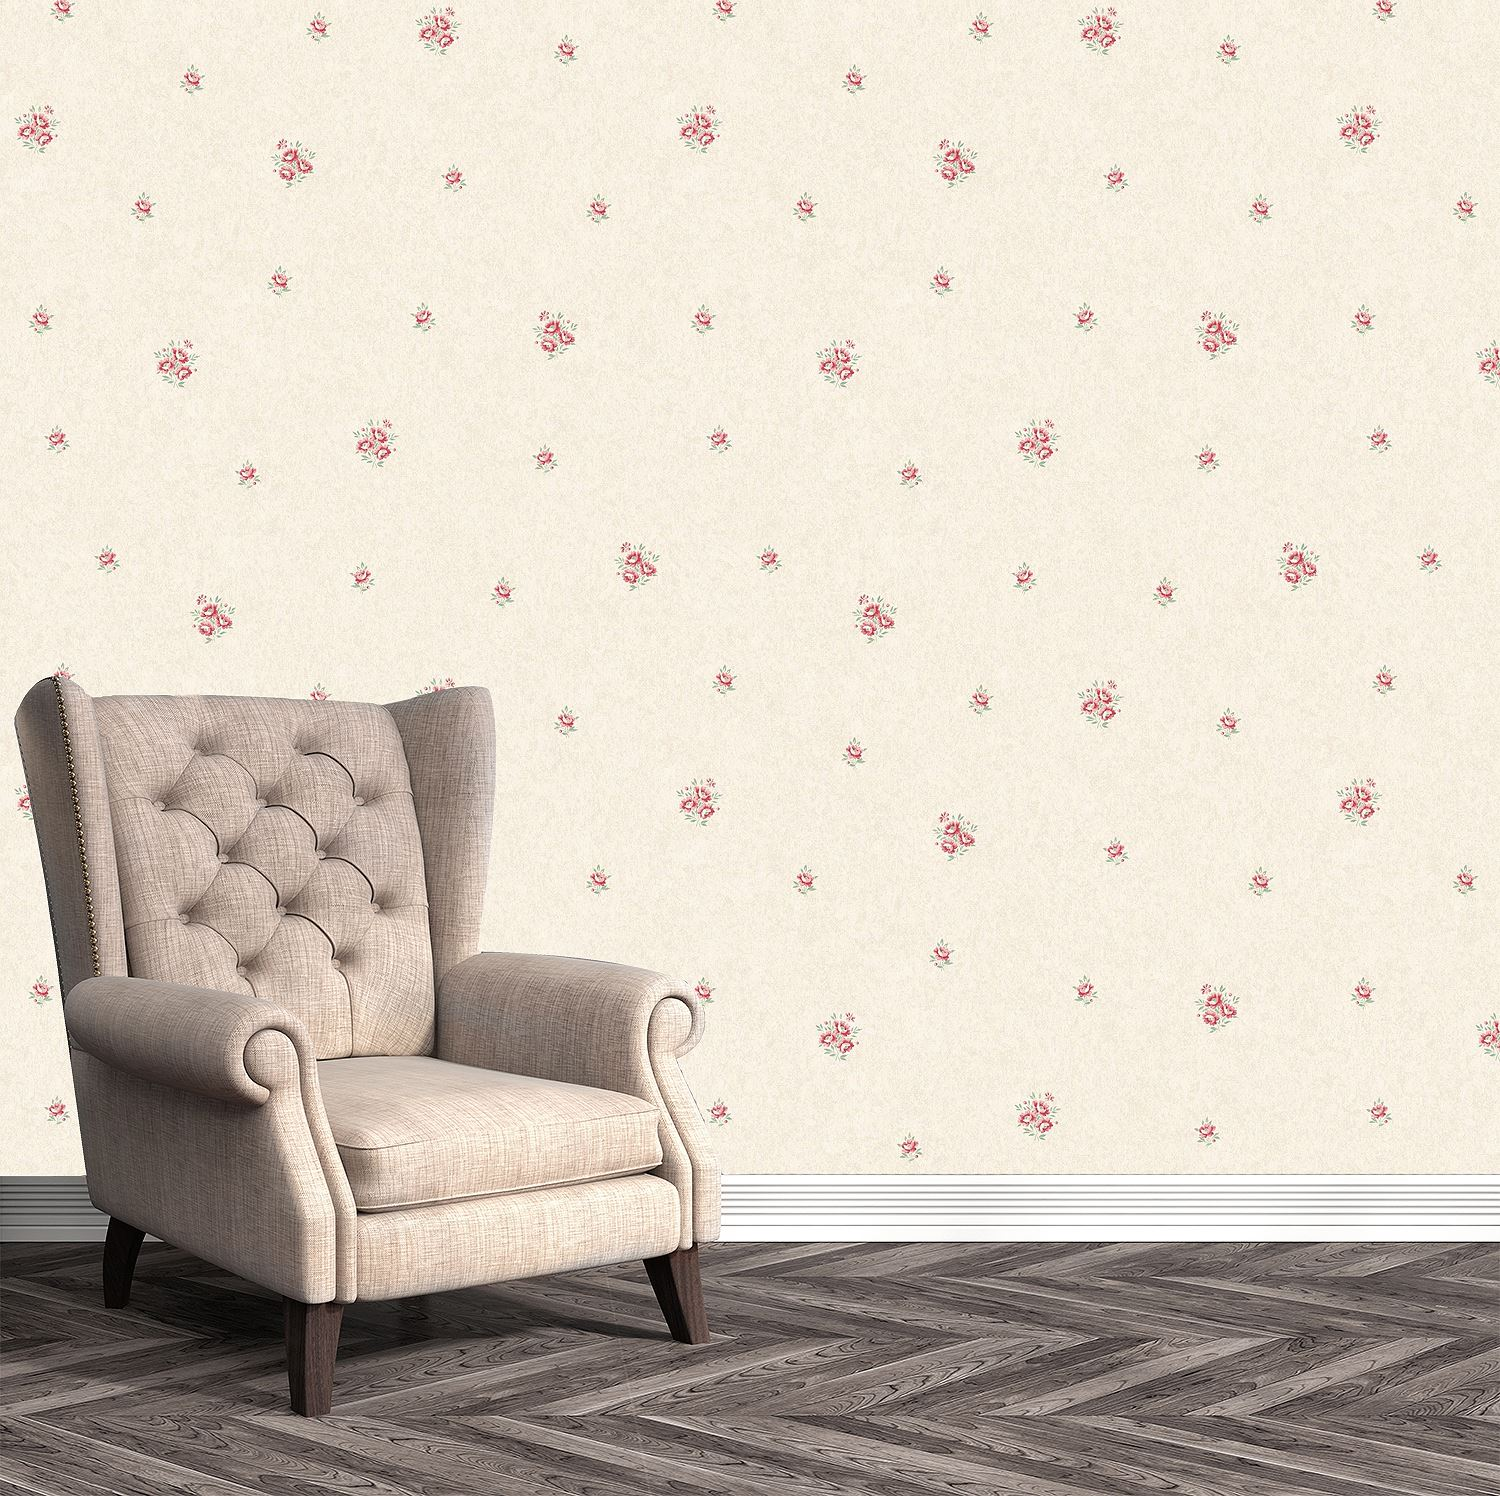 Pink Flower Floral Wallpaper Metallic Mica Shimmer Country Holden Eden Hall